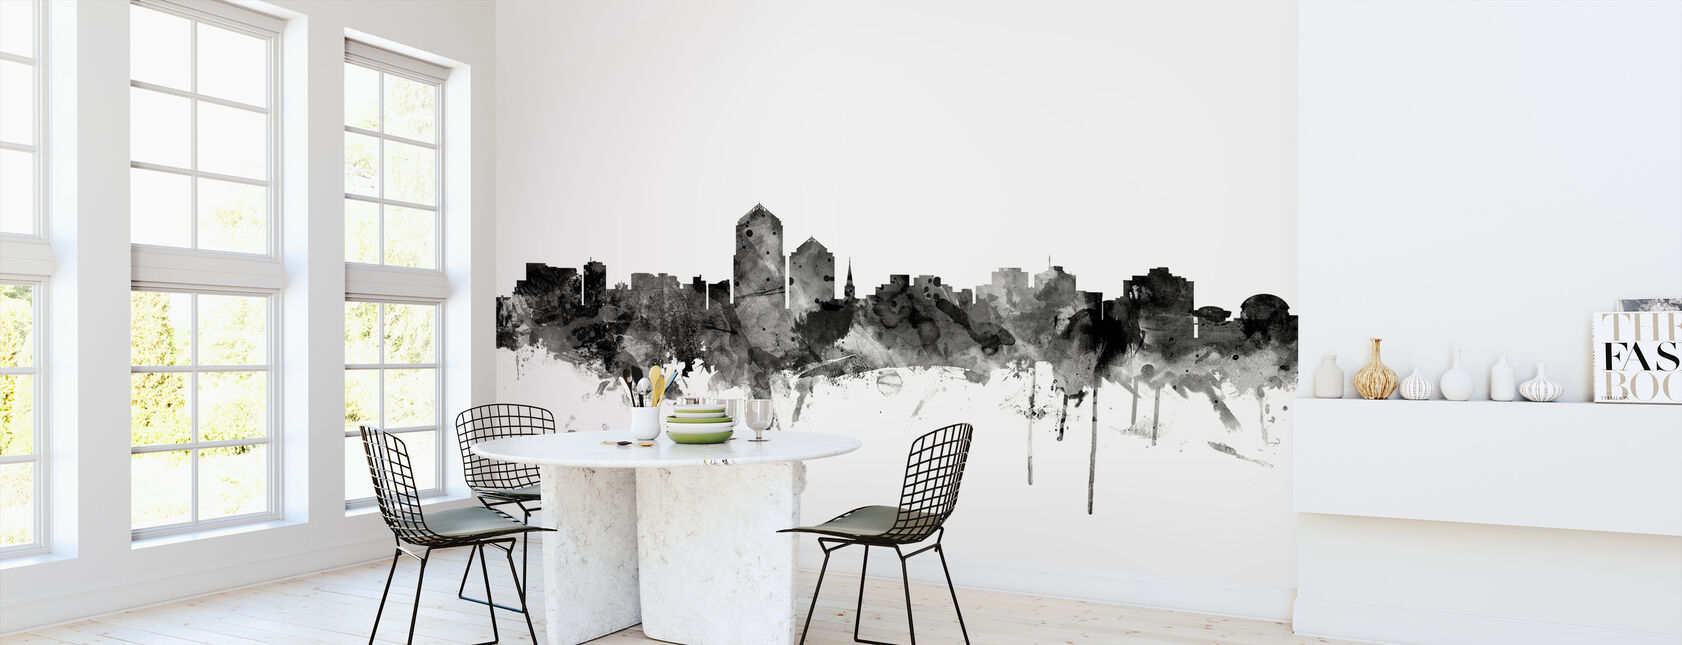 Albuquerque New Mexico Skyline Black - Wallpaper - Kitchen